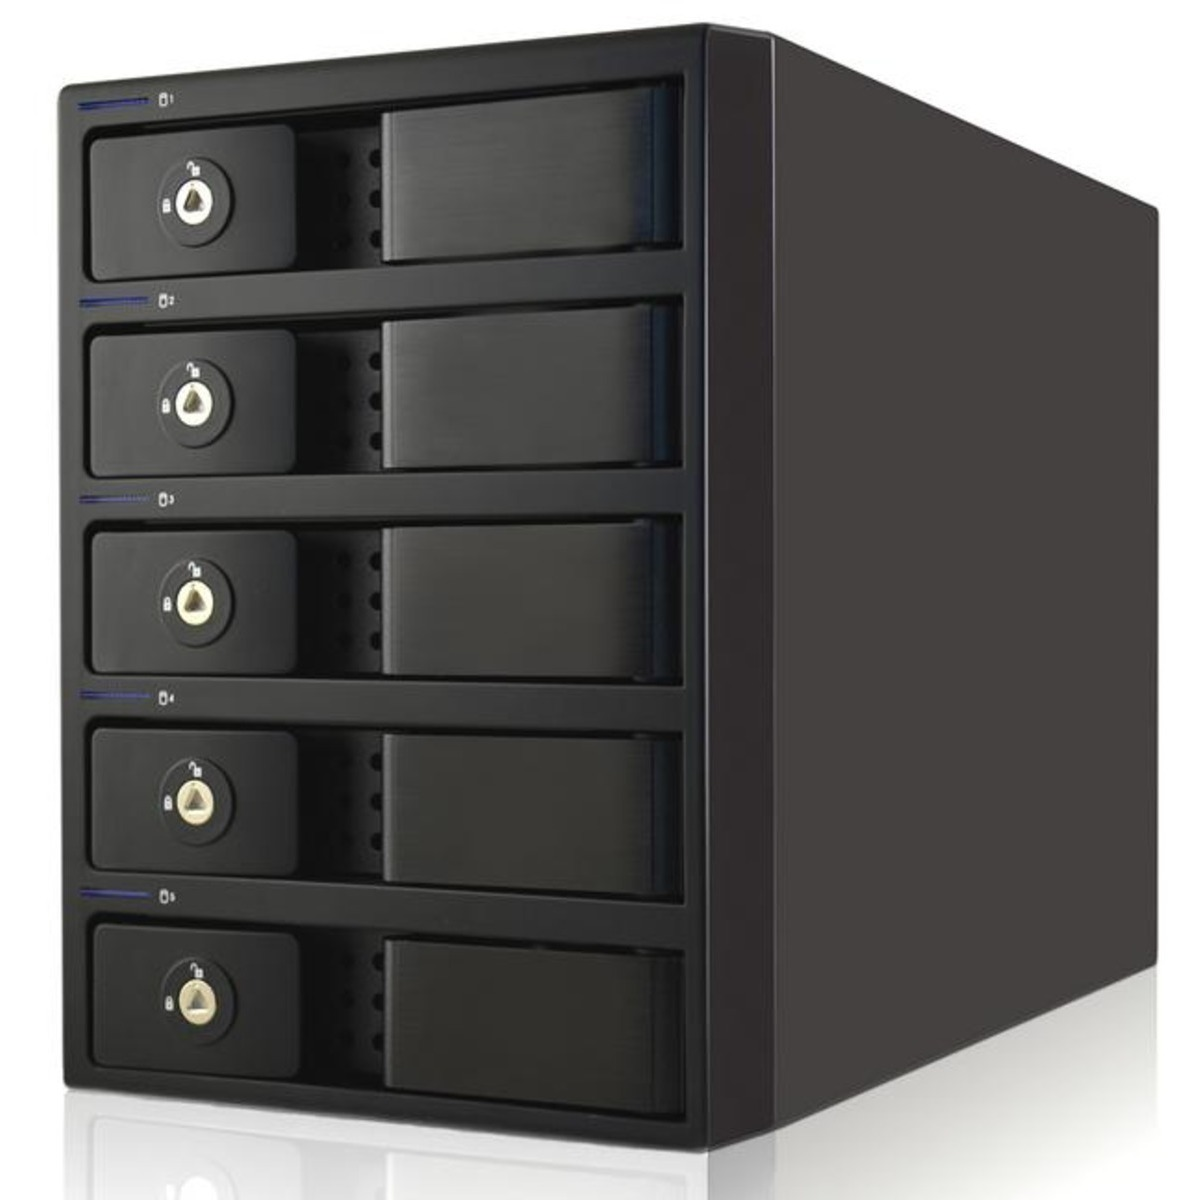 buy $1764 OYEN Mobius FireWire 800 eSATA USB 3.0 RAID 10tb Desktop DAS - Direct Attached Storage Device 5x2000gb Samsung 860 QVO MZ-76Q2T0BAM 2.5 SATA 6Gb/s SSD CONSUMER Class Drives Installed - Burn-In Tested - nas headquarters buy network attached storage server device das new raid-5 free shipping usa spring inventory clearance sale happening now Mobius FireWire 800 eSATA USB 3.0 RAID